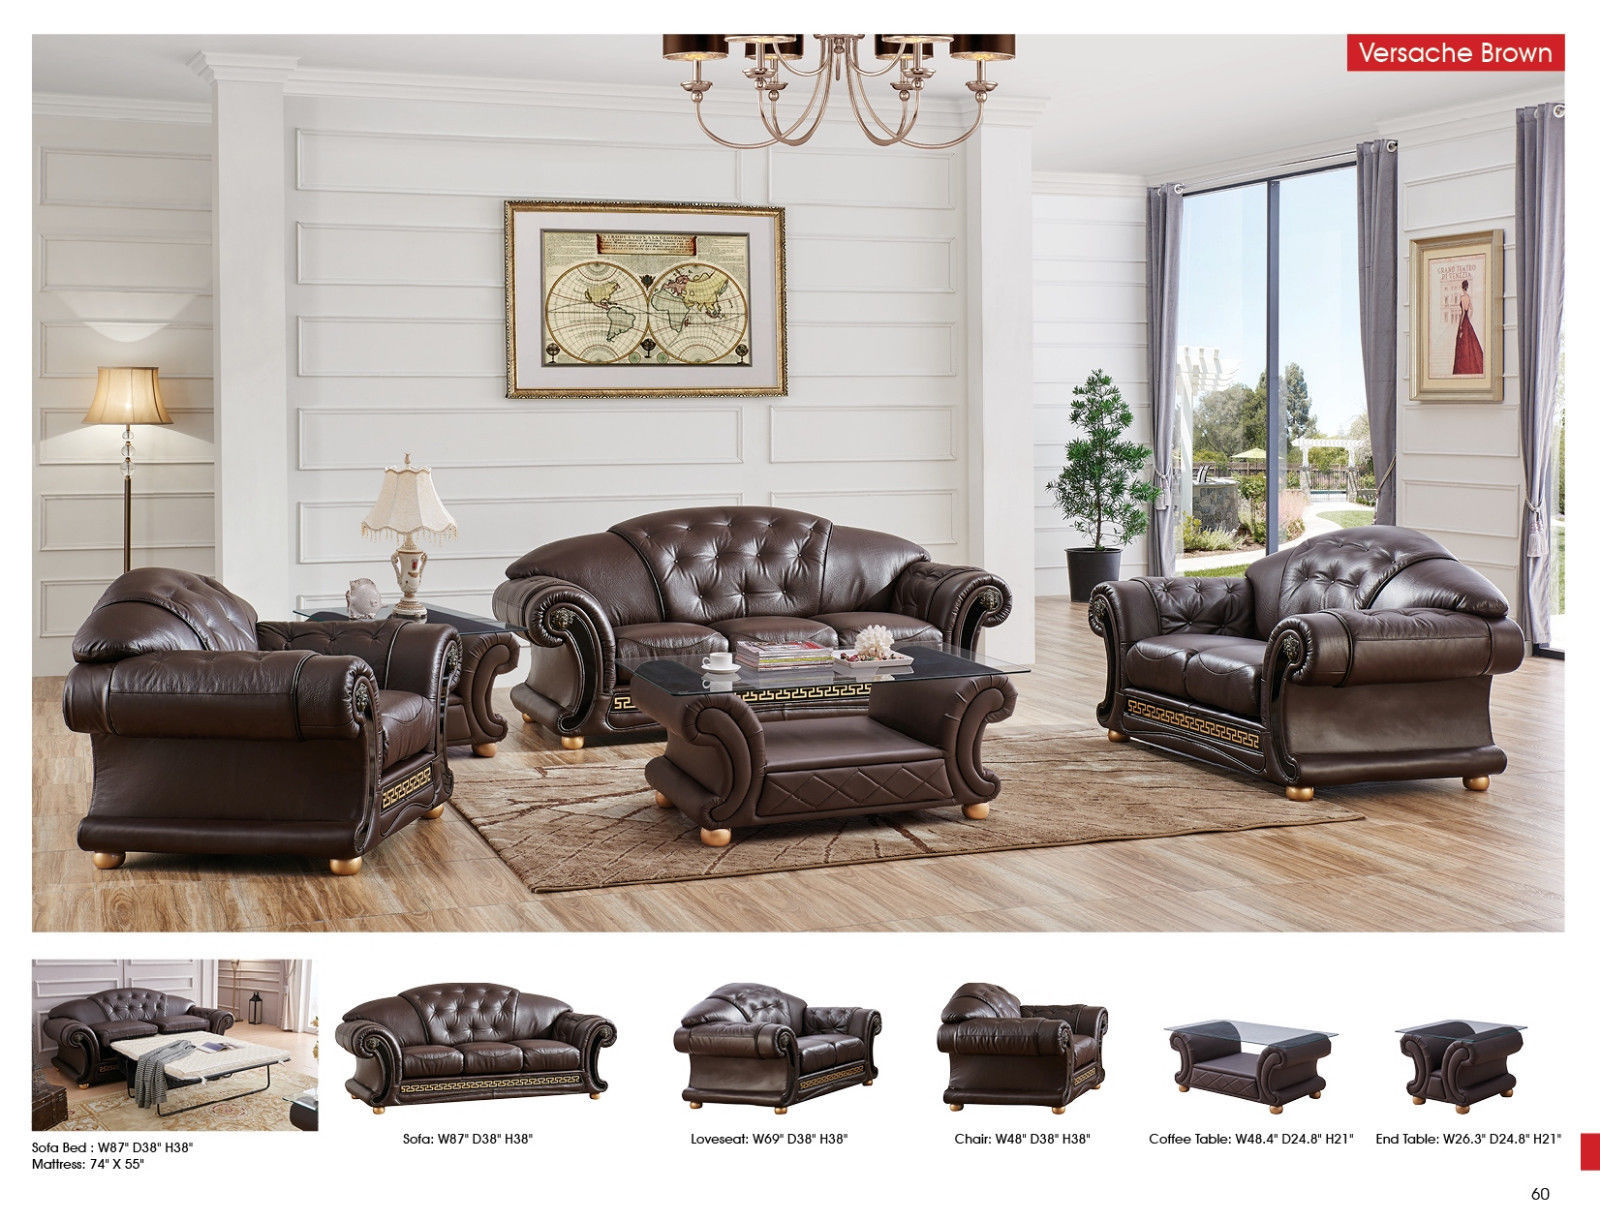 ESF Versachi Leather Living Room Sofa Set 3pc. Brown Classic Traditional Style